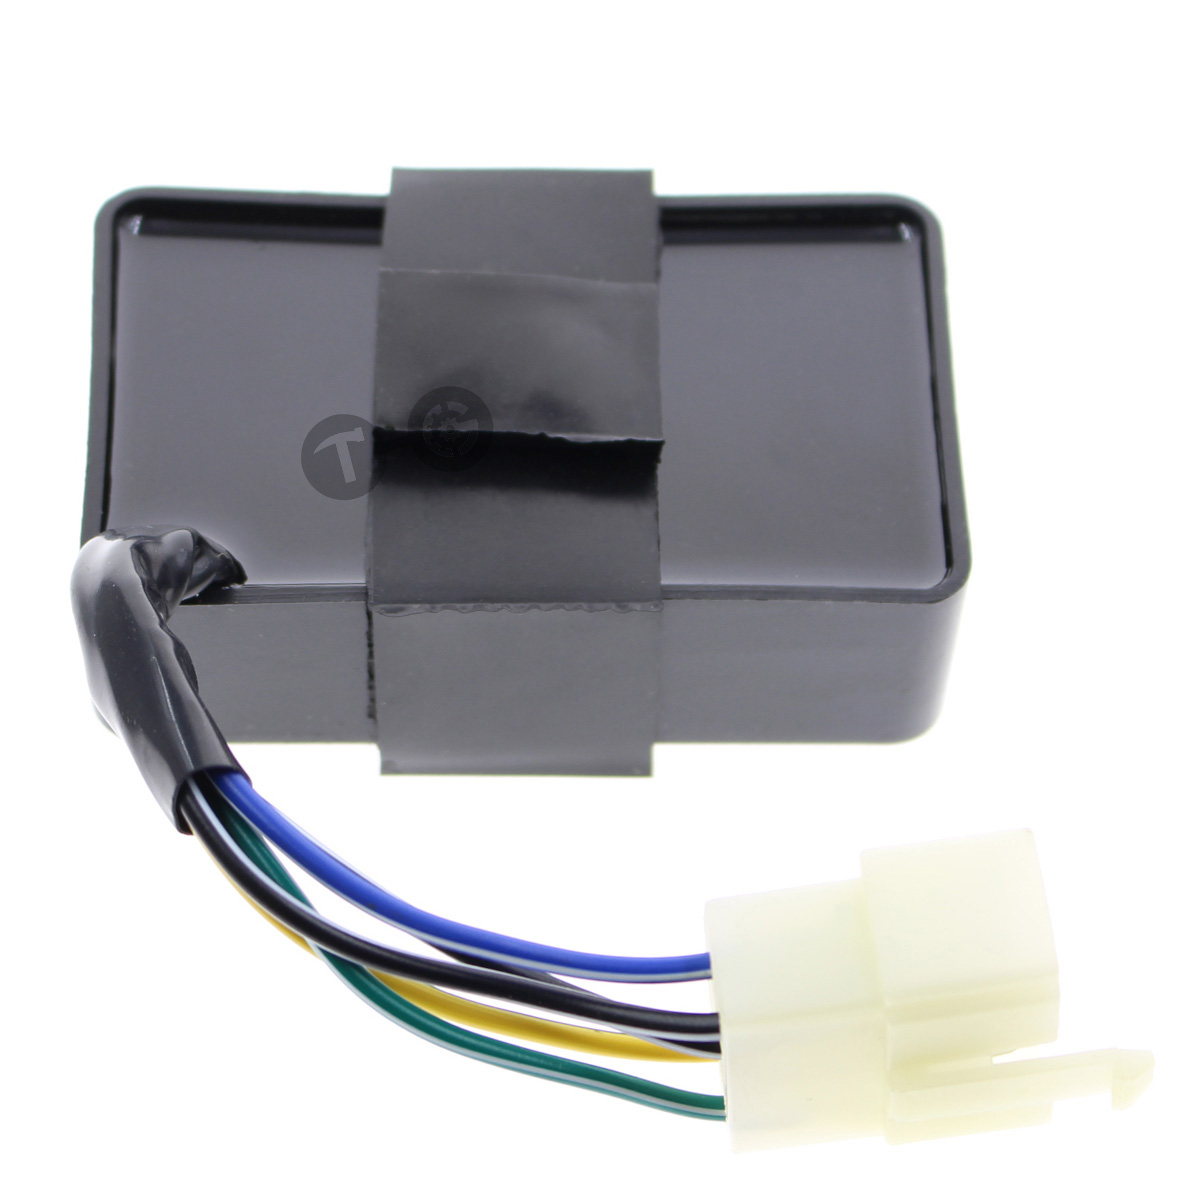 hight resolution of new cdi box module for kawasaki bayou 300 klf300 klt200 klt250 kz250 250 csr ltd